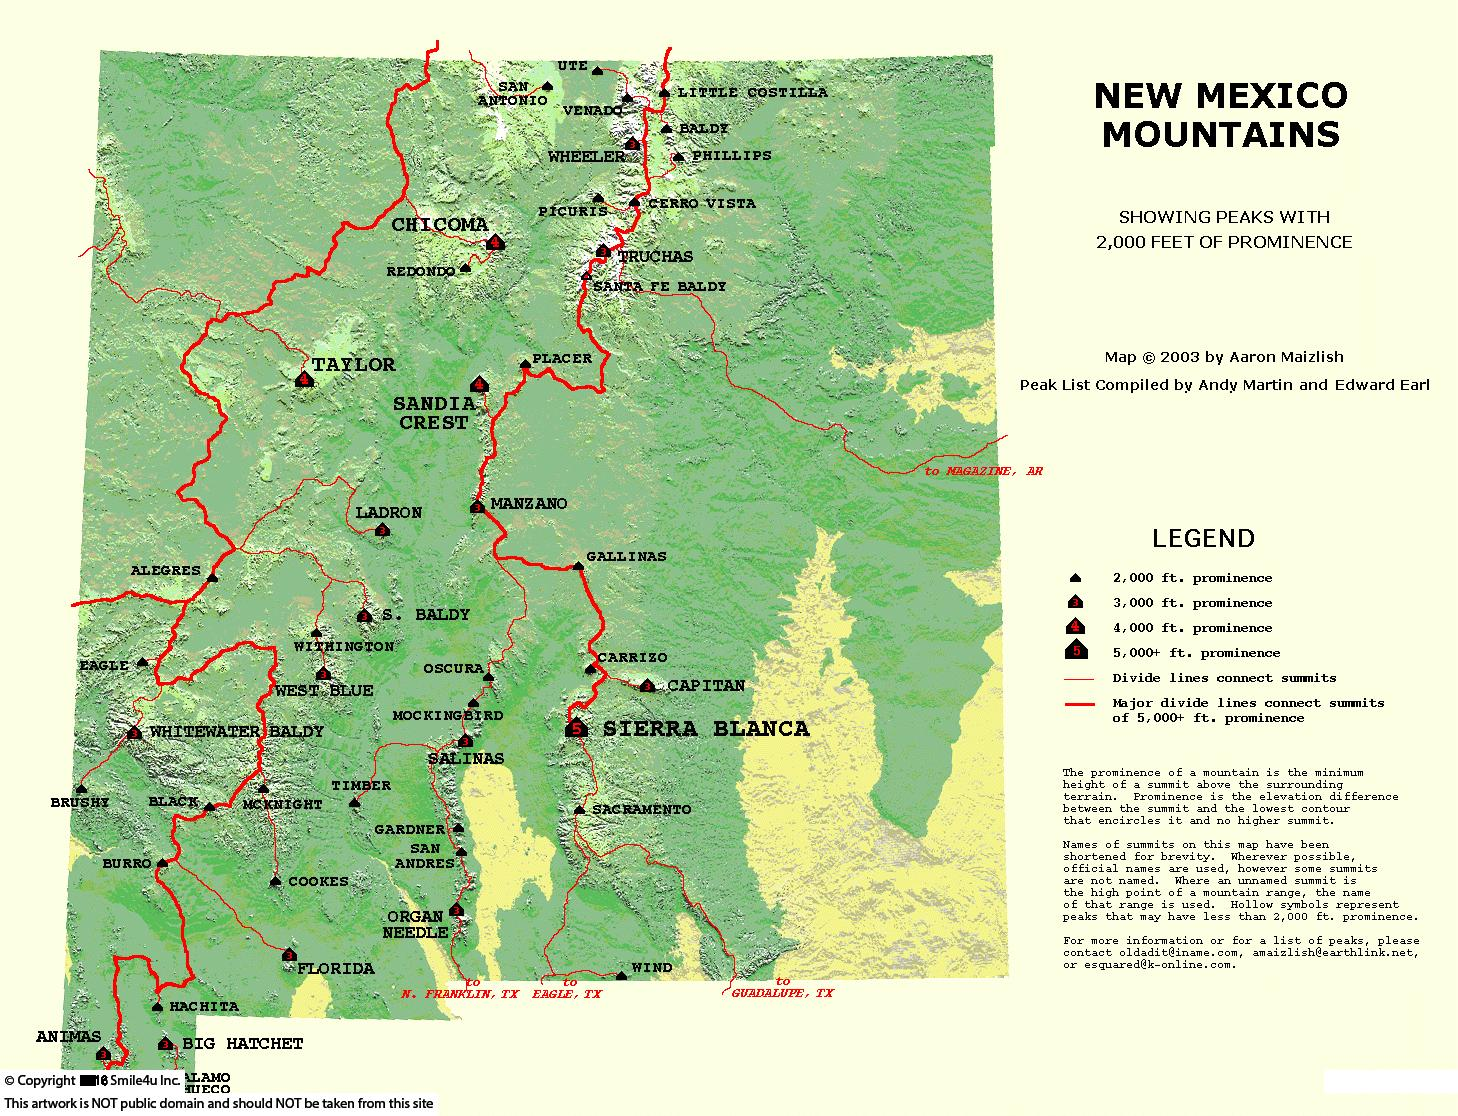 320581_watermarked_newmexicosummits.png